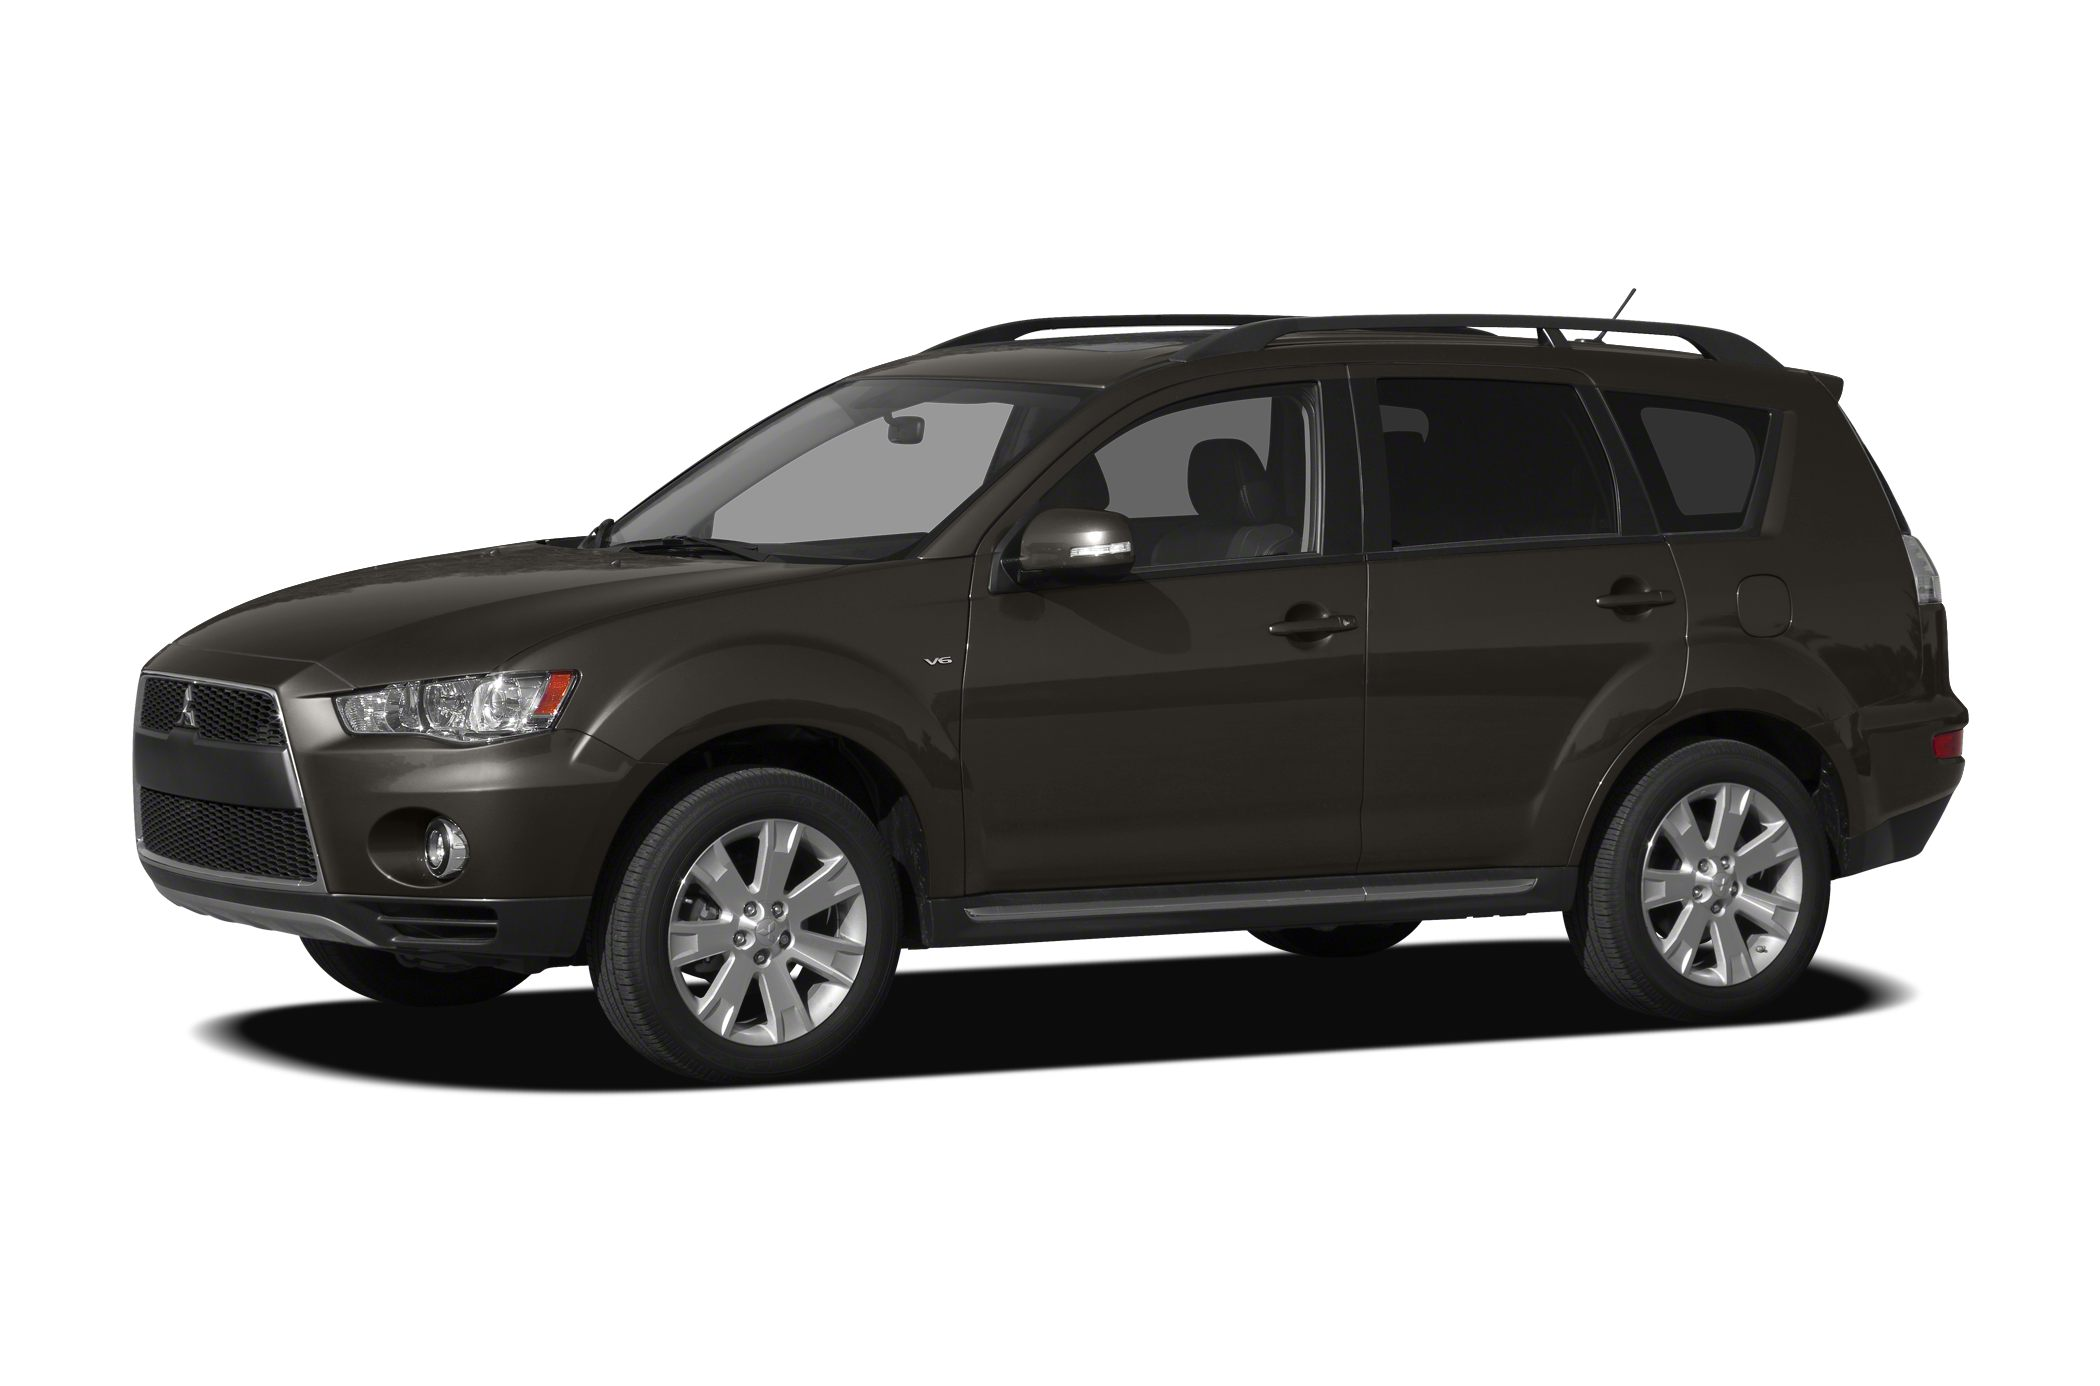 2011 Mitsubishi Outlander GT SUV for sale in Meadville for $18,503 with 32,507 miles